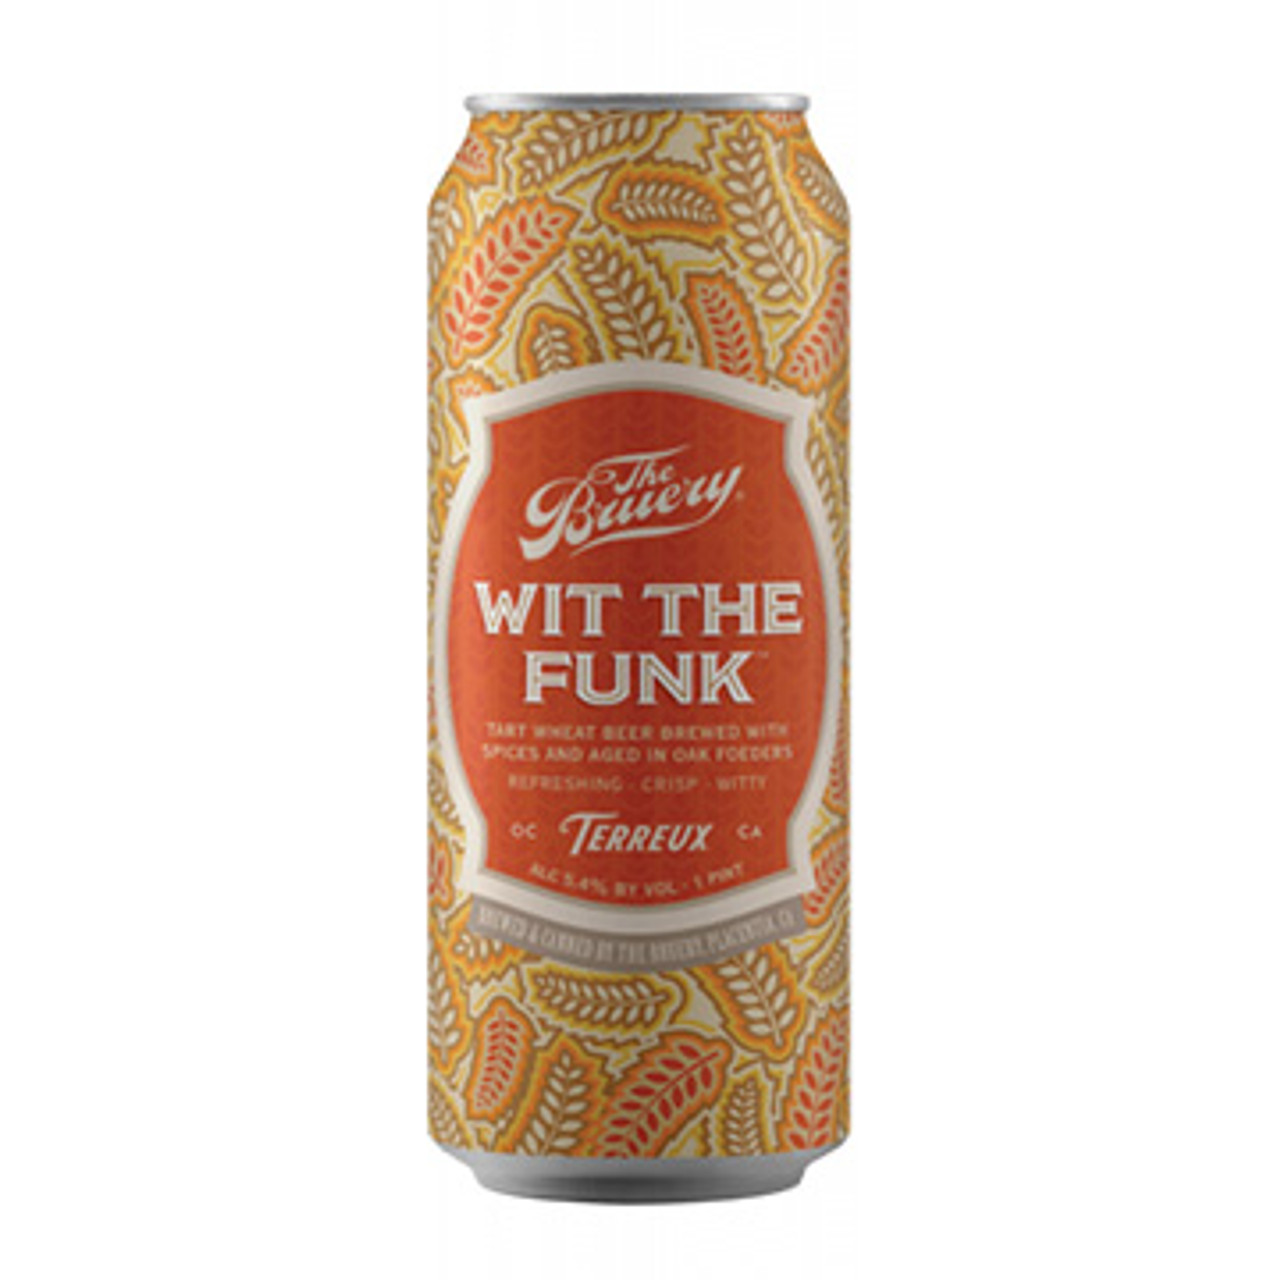 The Bruery Wit The Funk Tart Wheat Beer 16oz 4 Pack Cans